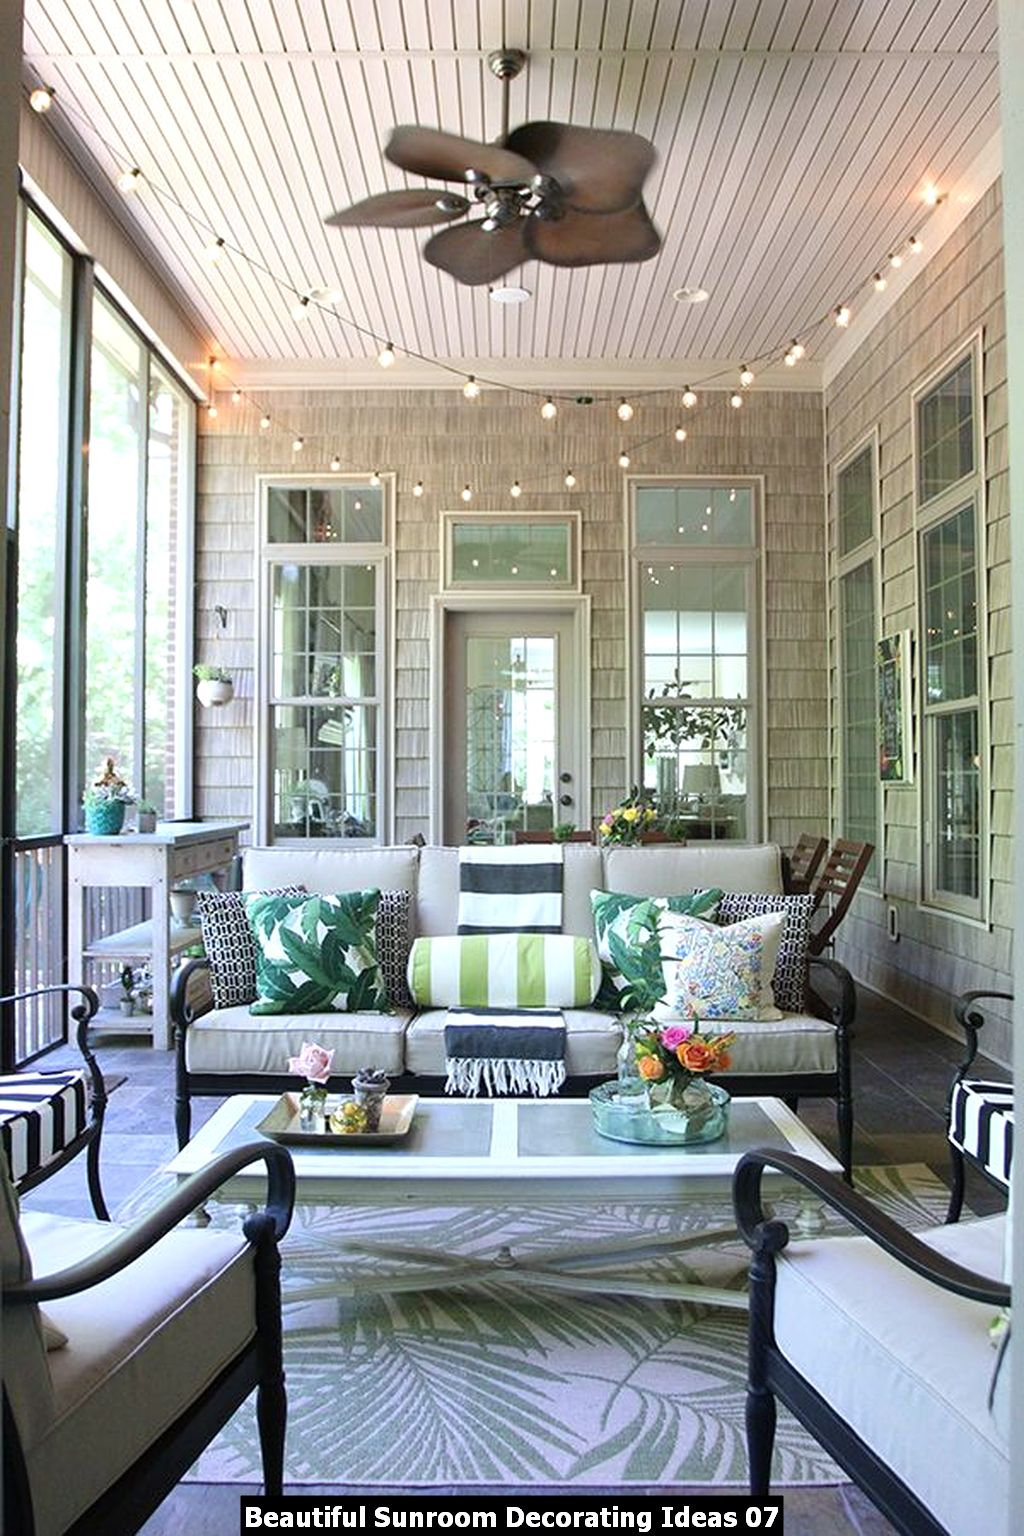 Beautiful Sunroom Decorating Ideas 07